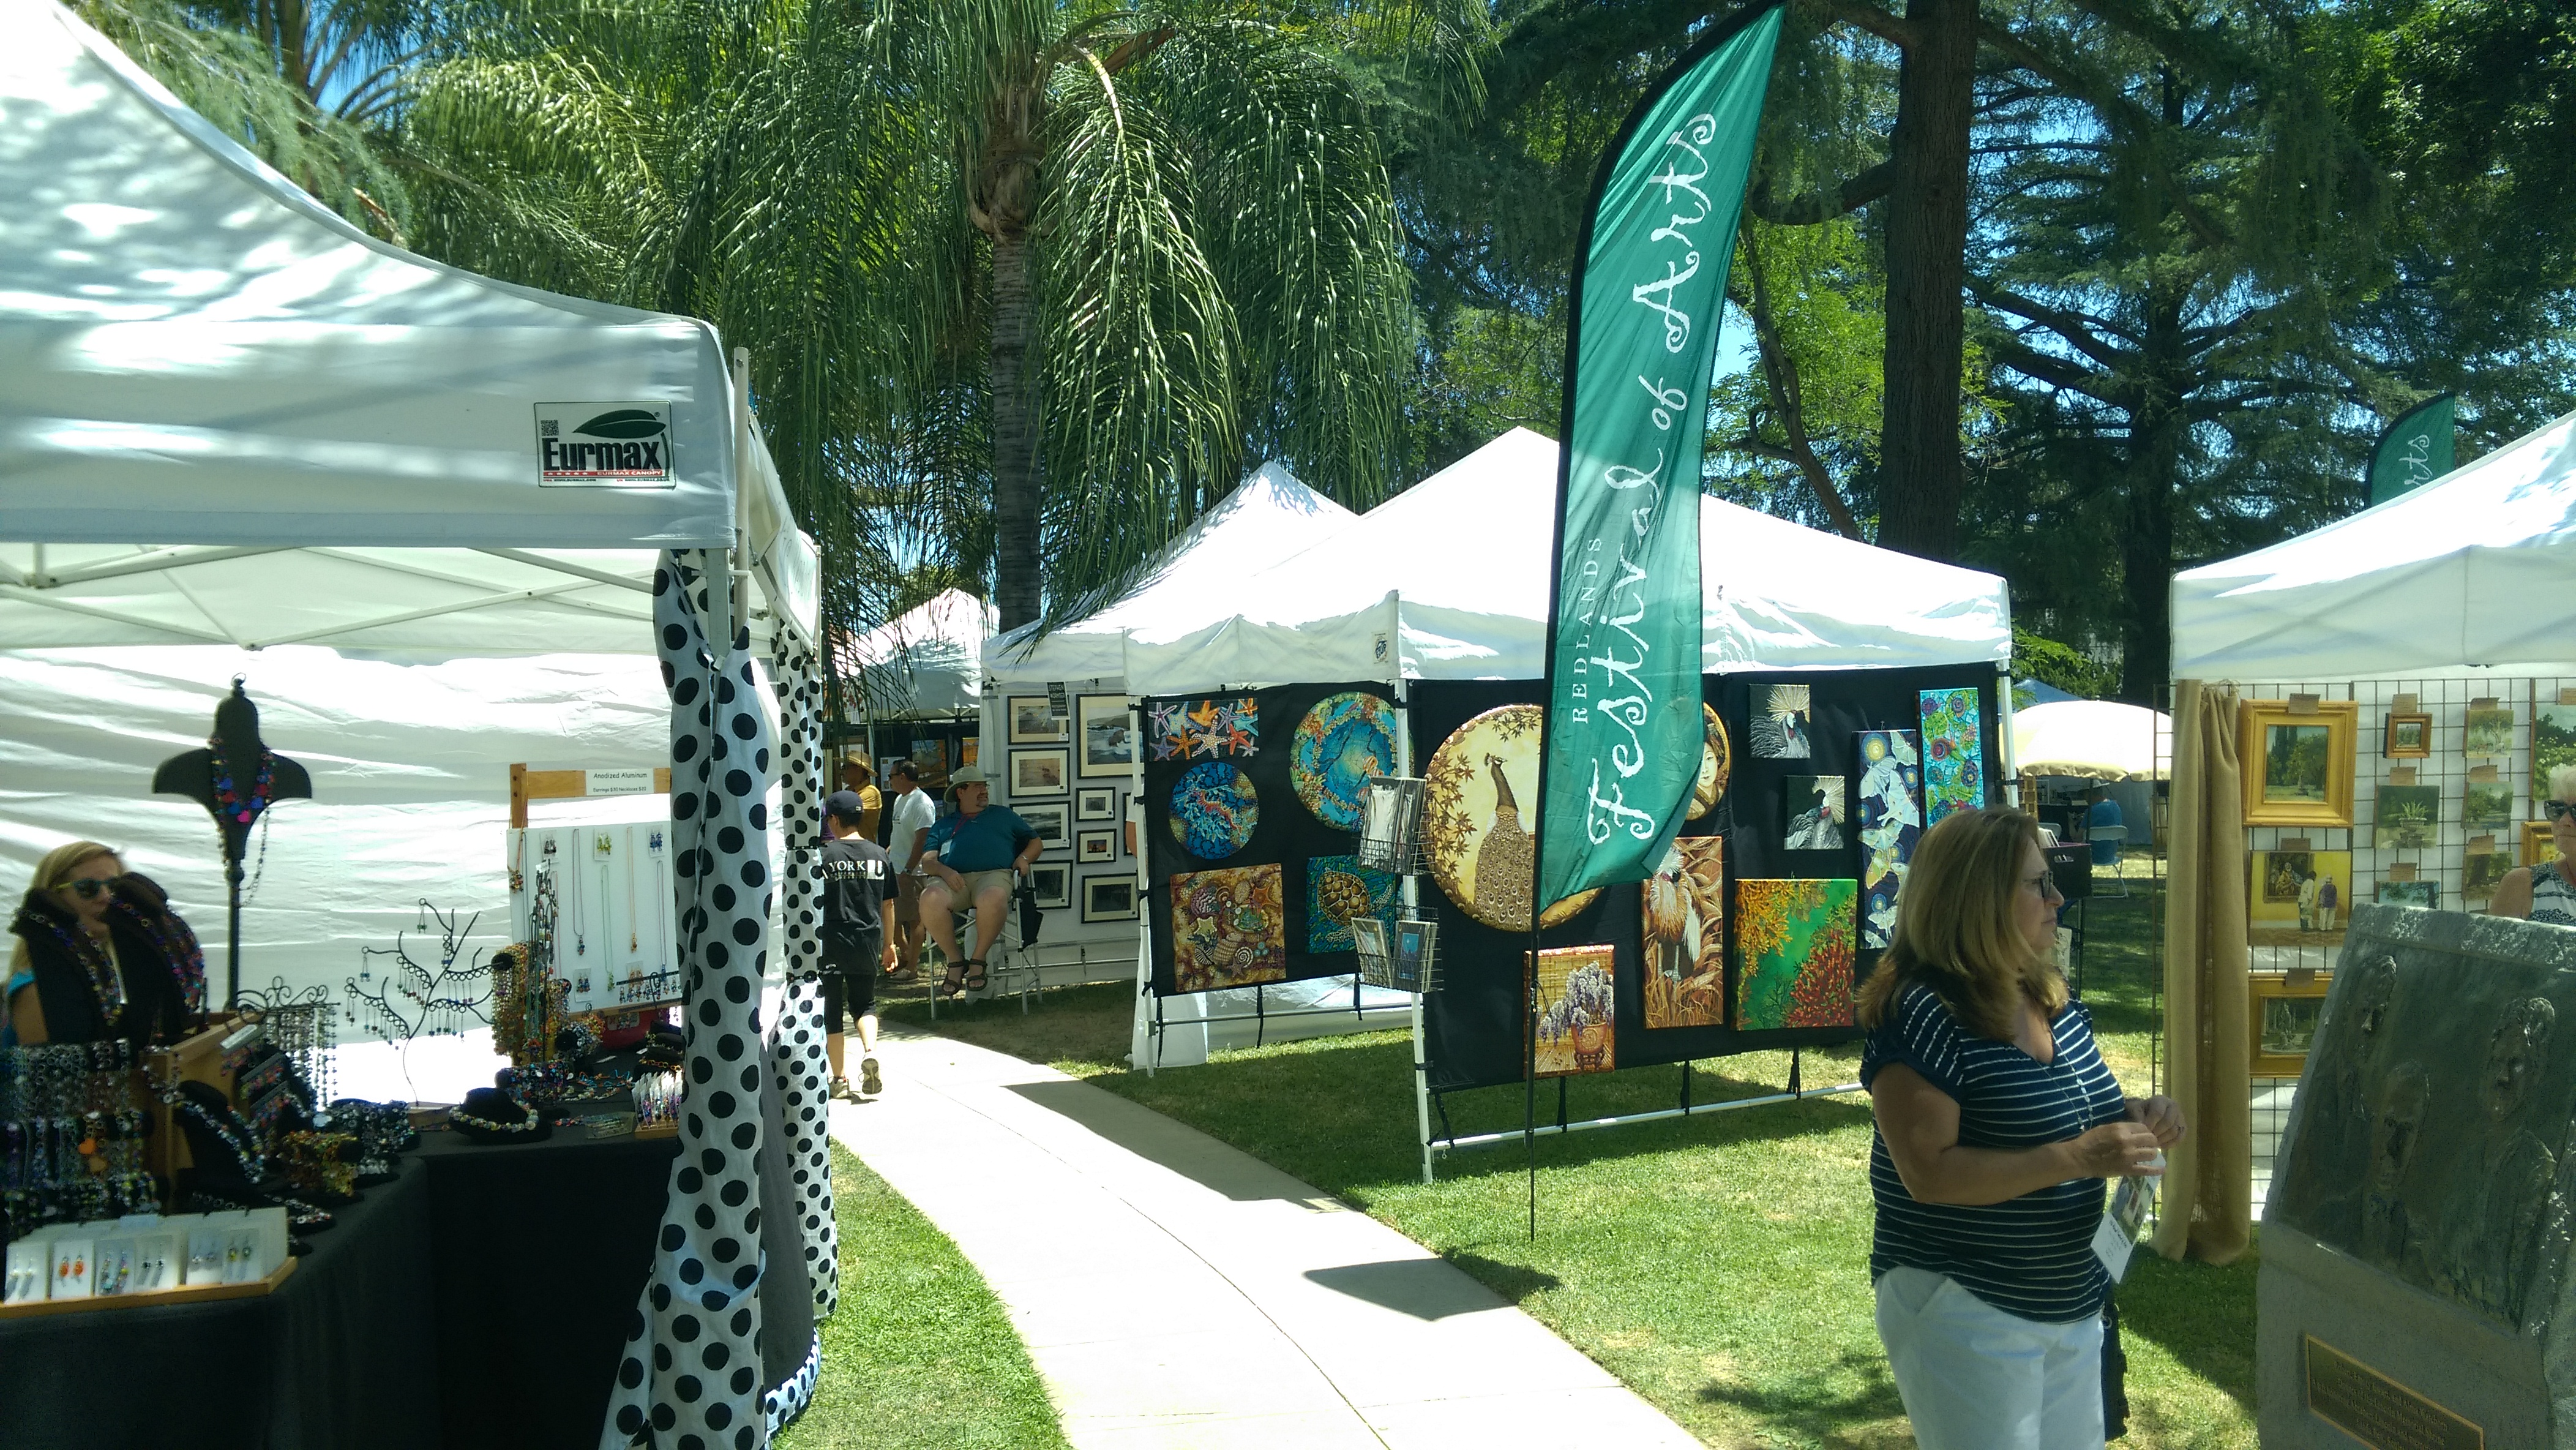 Redlands Festival of Arts